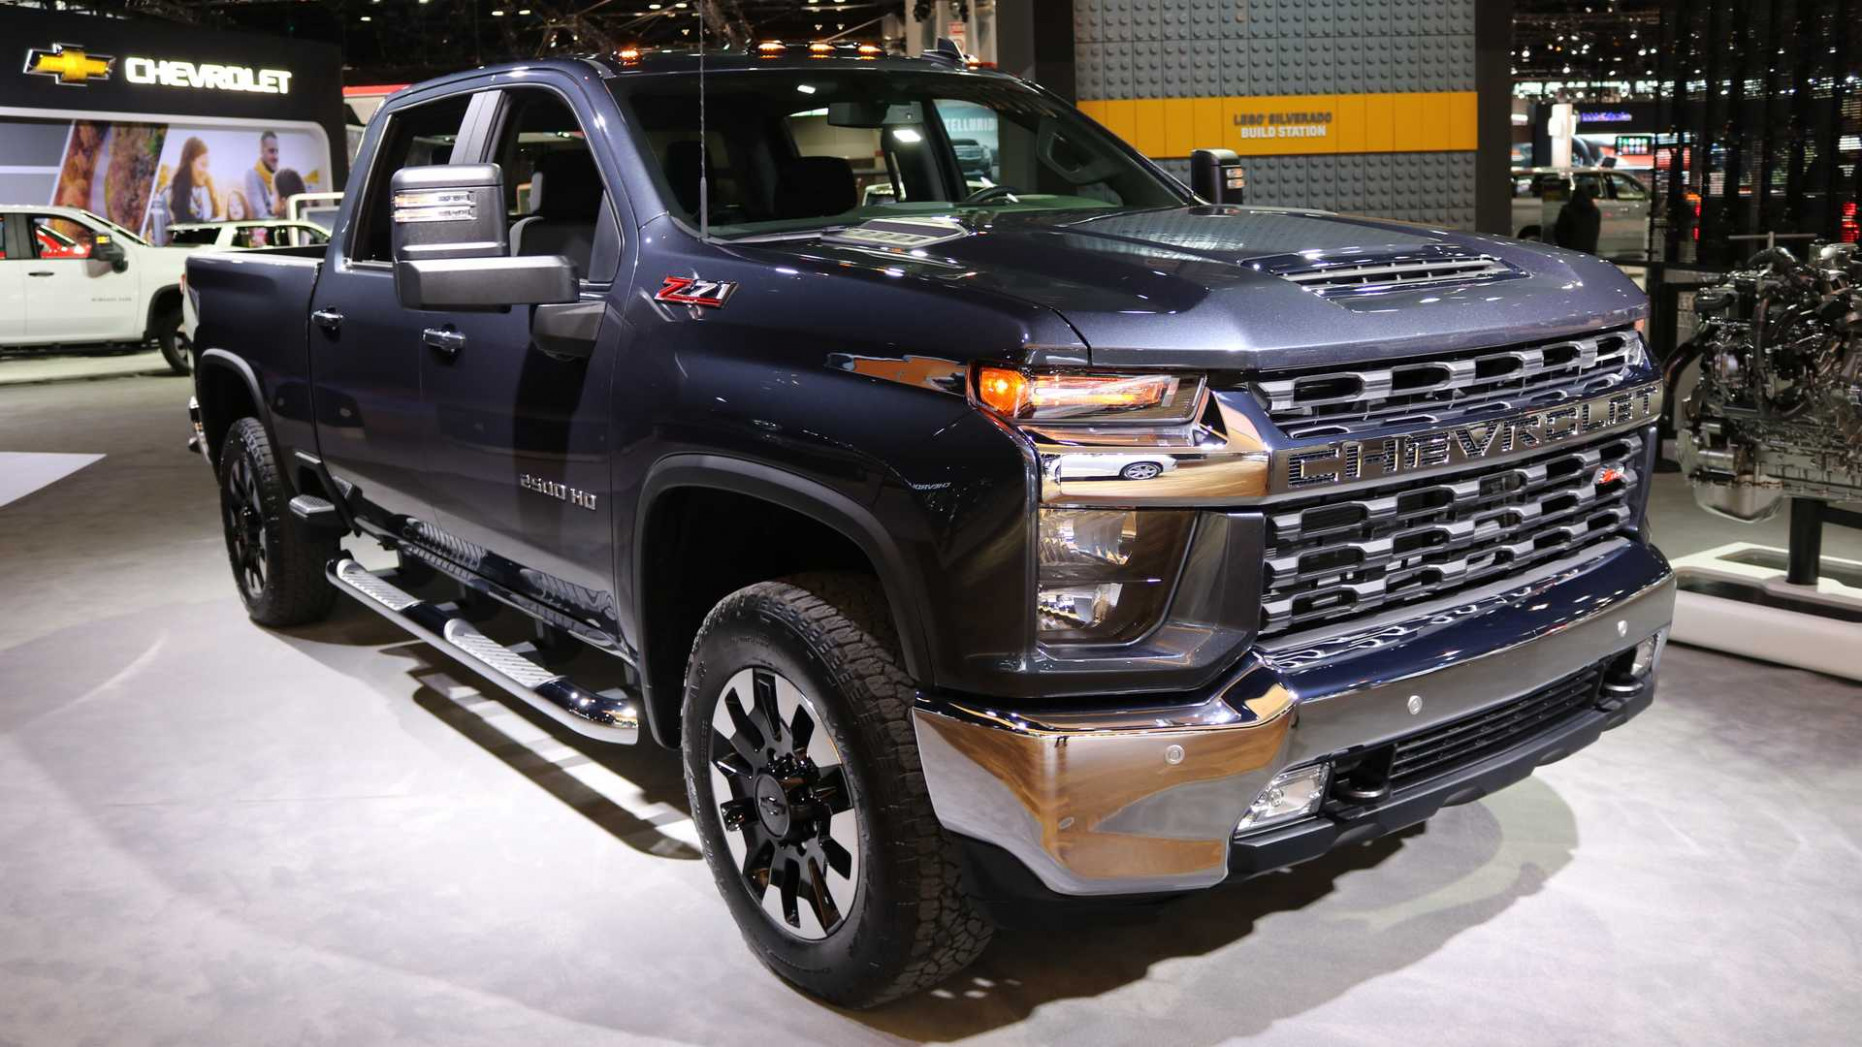 8 Chevrolet Silverado HD Has New V8, Can Tow 8,8 Pounds